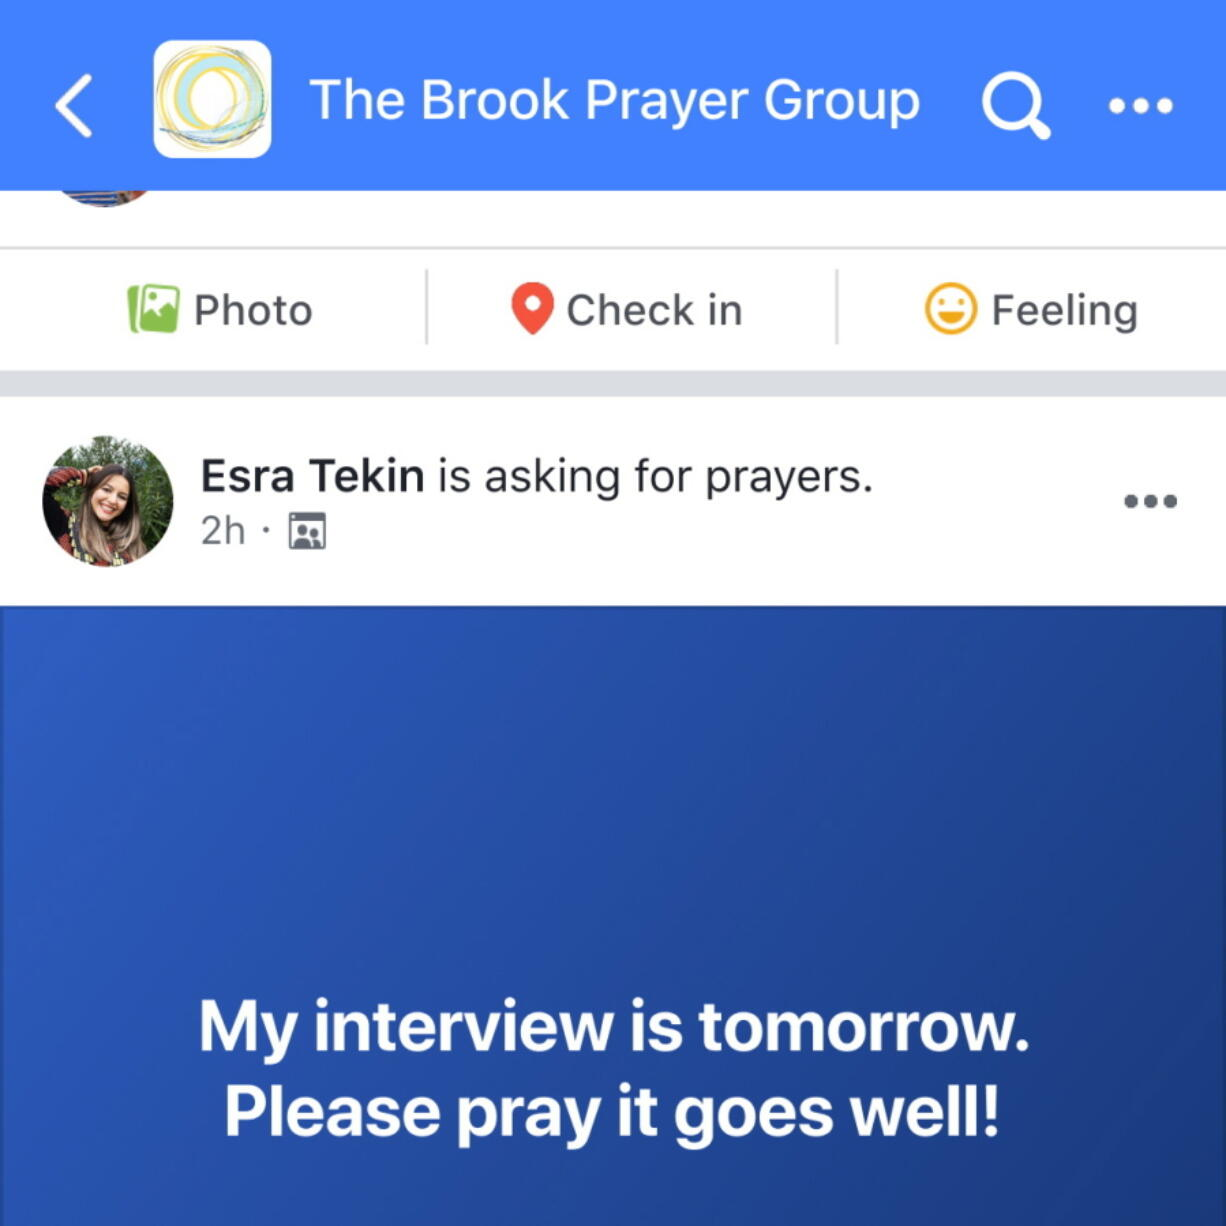 This image provided by Facebook in August 2021 shows a simulation of the social media company's prayer request feature. The tool has been embraced by some religious leaders as a cutting-edge way to engage the faithful online. Others are eyeing it warily as they weigh its usefulness against the privacy and security concerns they have with Facebook.